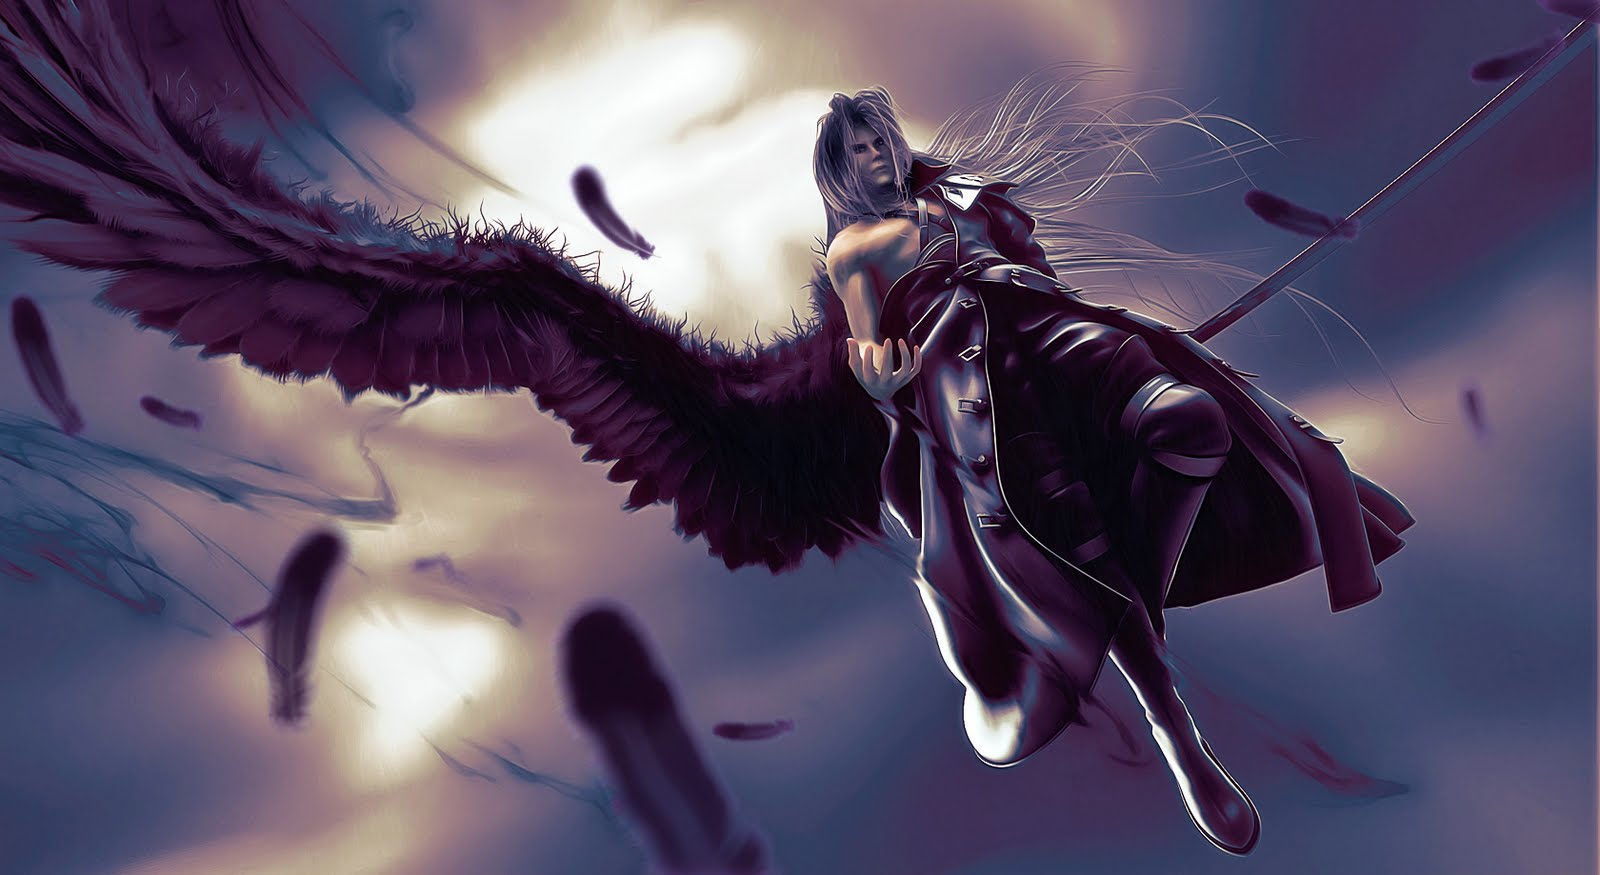 Sephiroth and Tifa Blog: August 2010 One Winged Angel Sephiroth